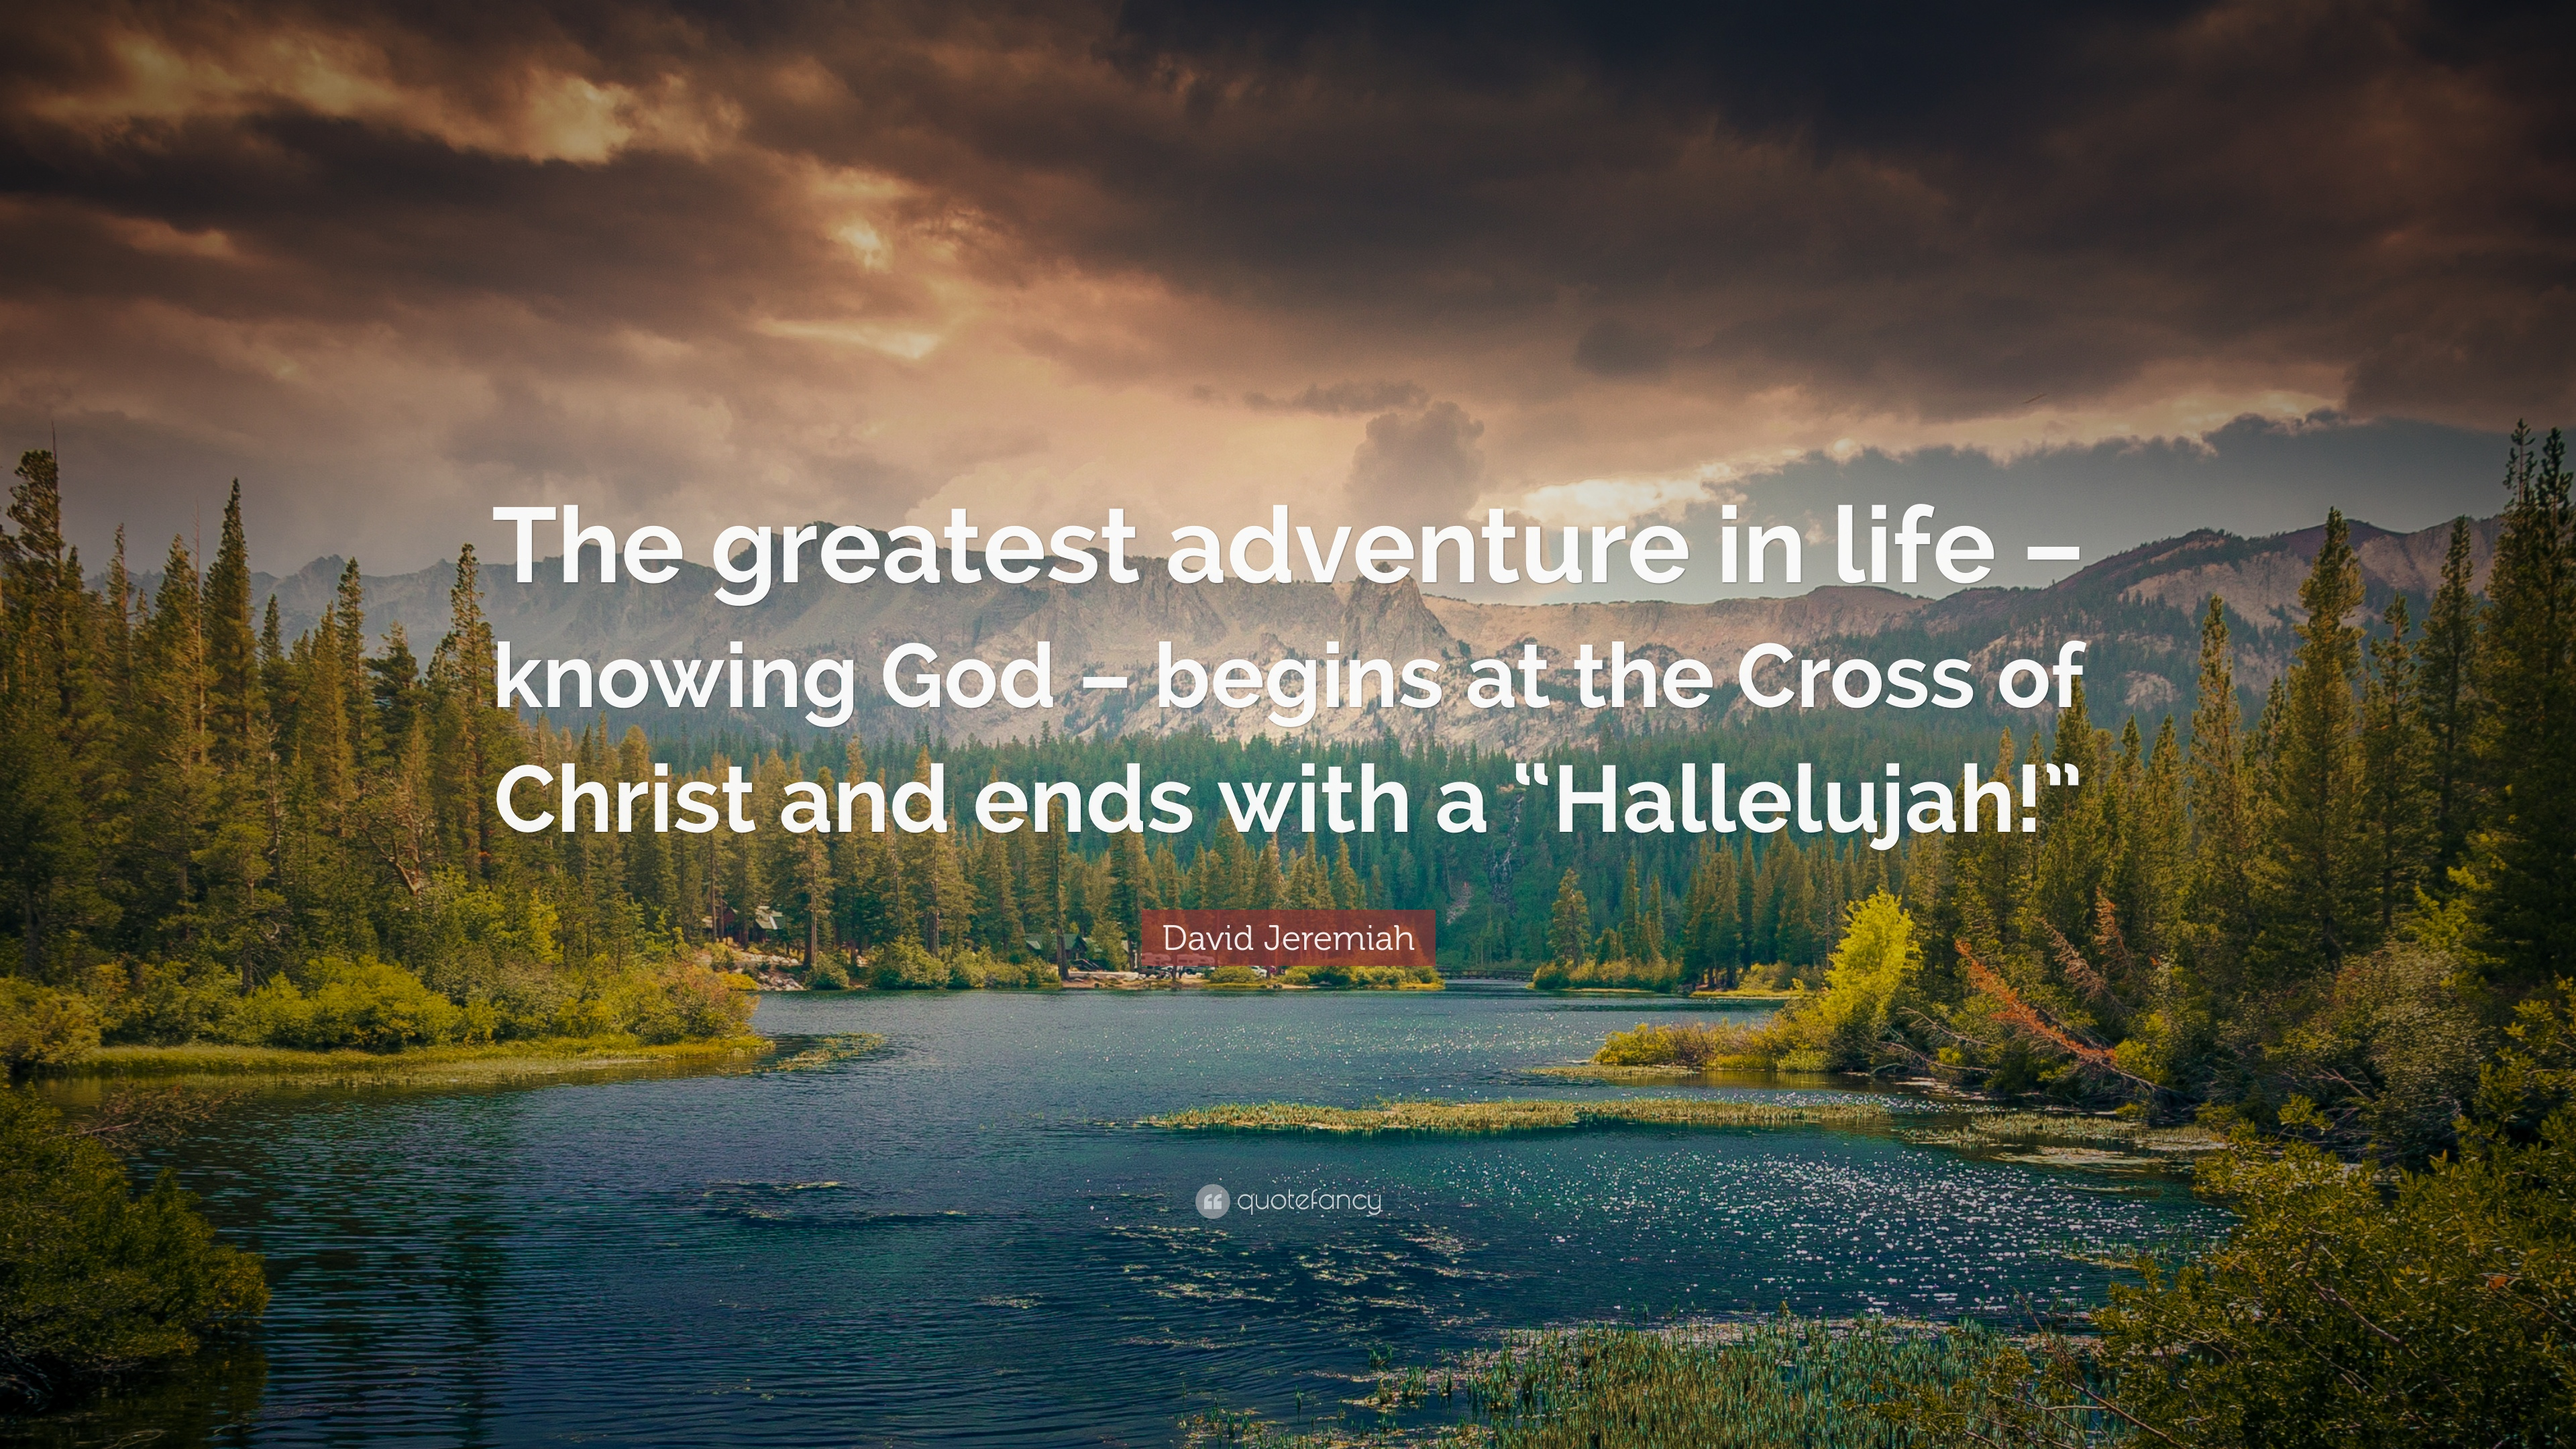 60 Best Adventure Quotes And Sayings: Adventure Quotes (39 Wallpapers)